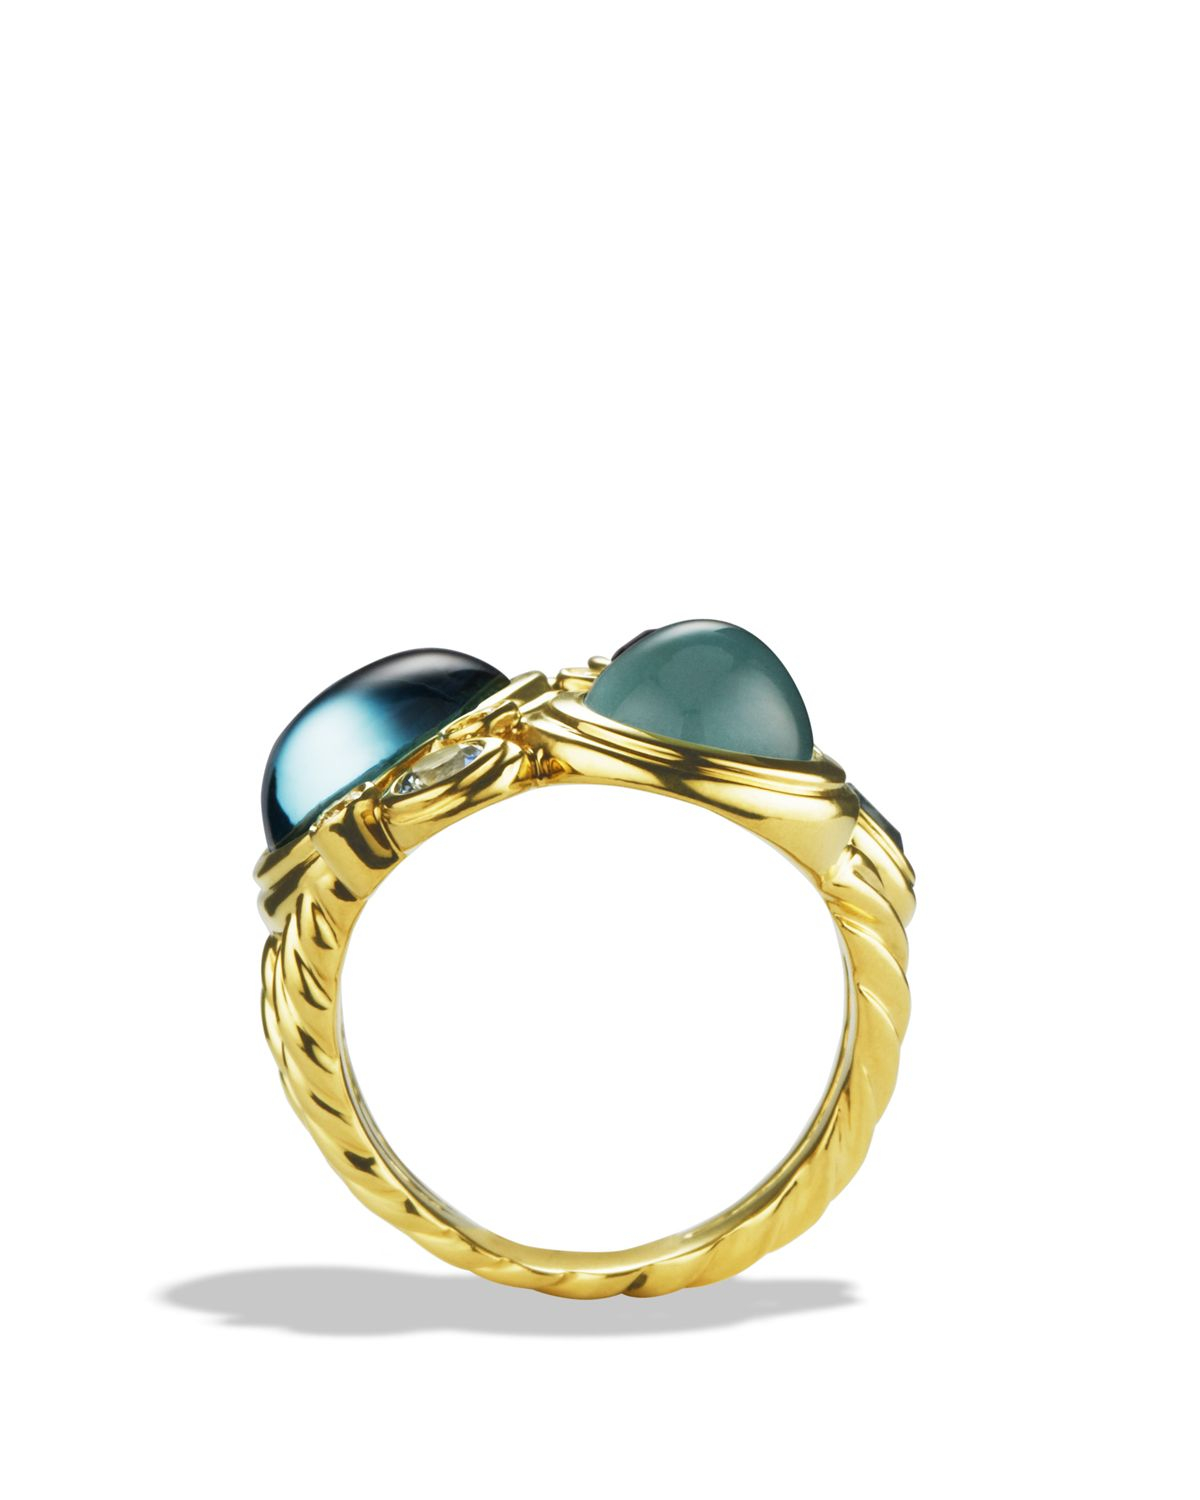 david yurman mosaic ring with blue topaz milky aquamarine